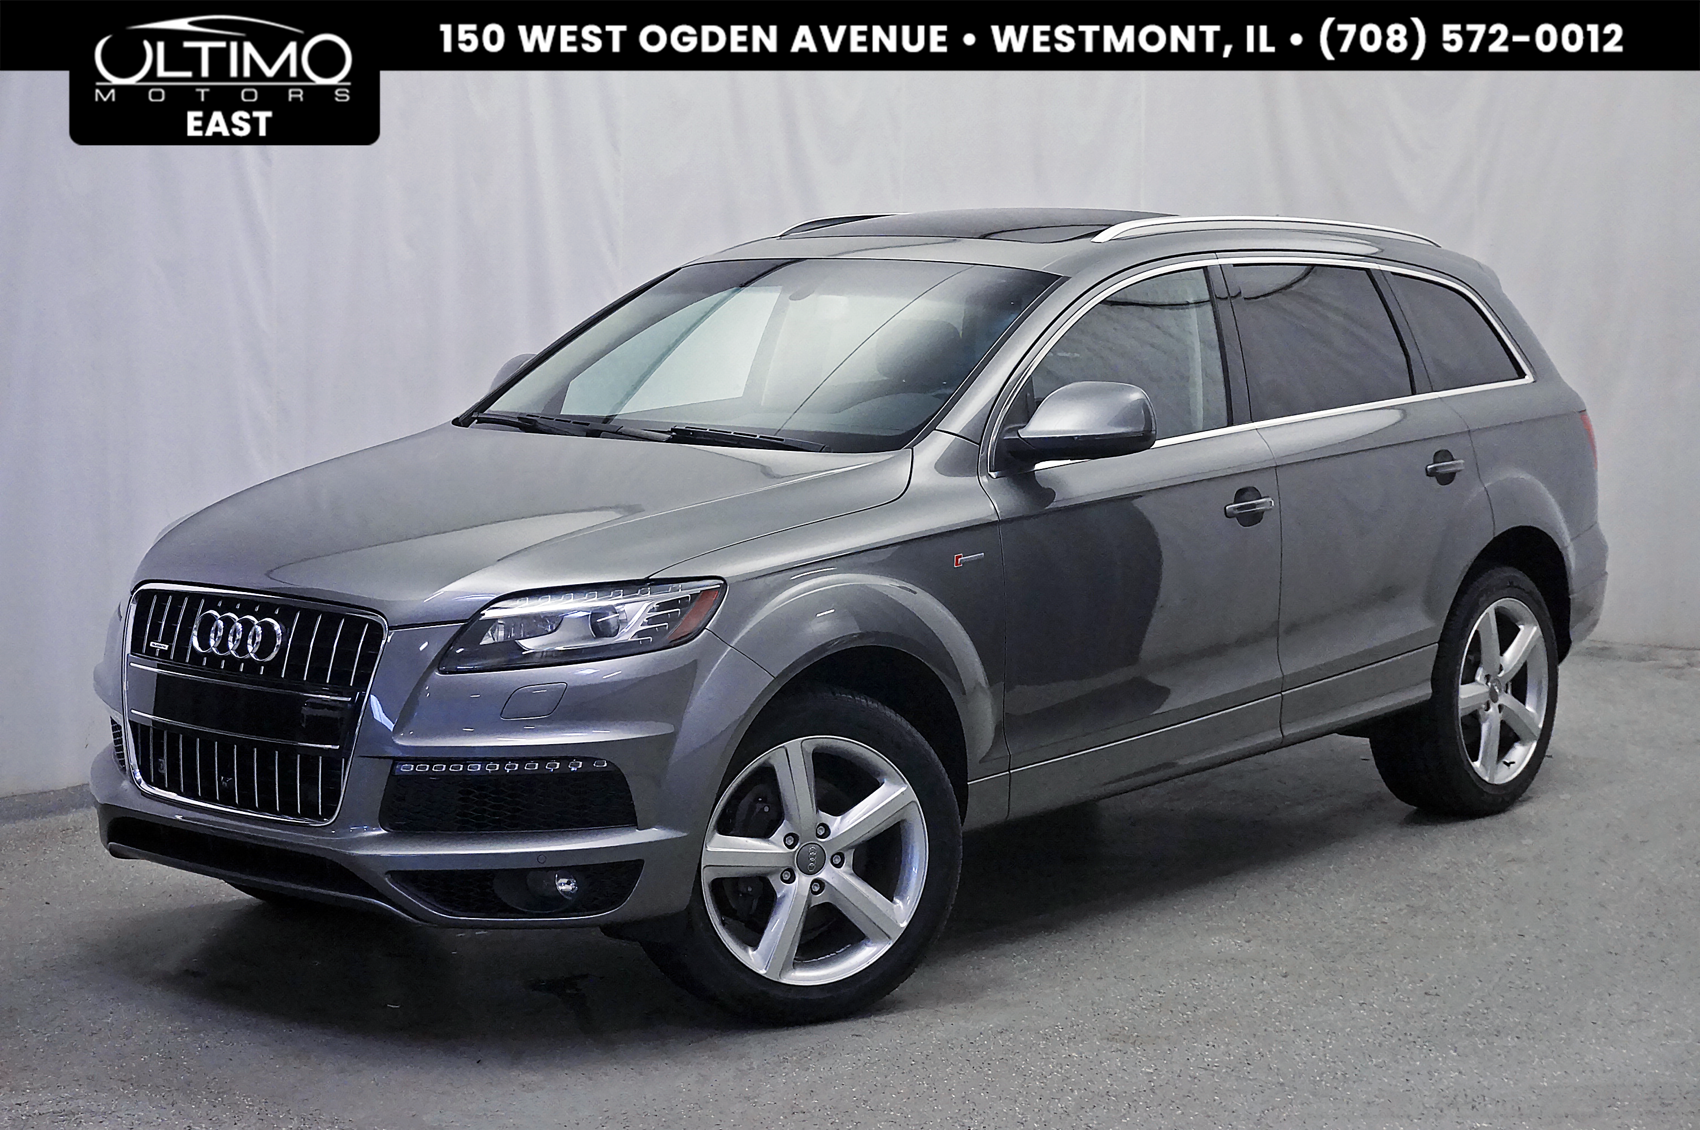 Pre-Owned 2015 Audi Q7 3.0T S line Prestige Luxury Pkg, Cold Weather Pkg, Tow Pkg